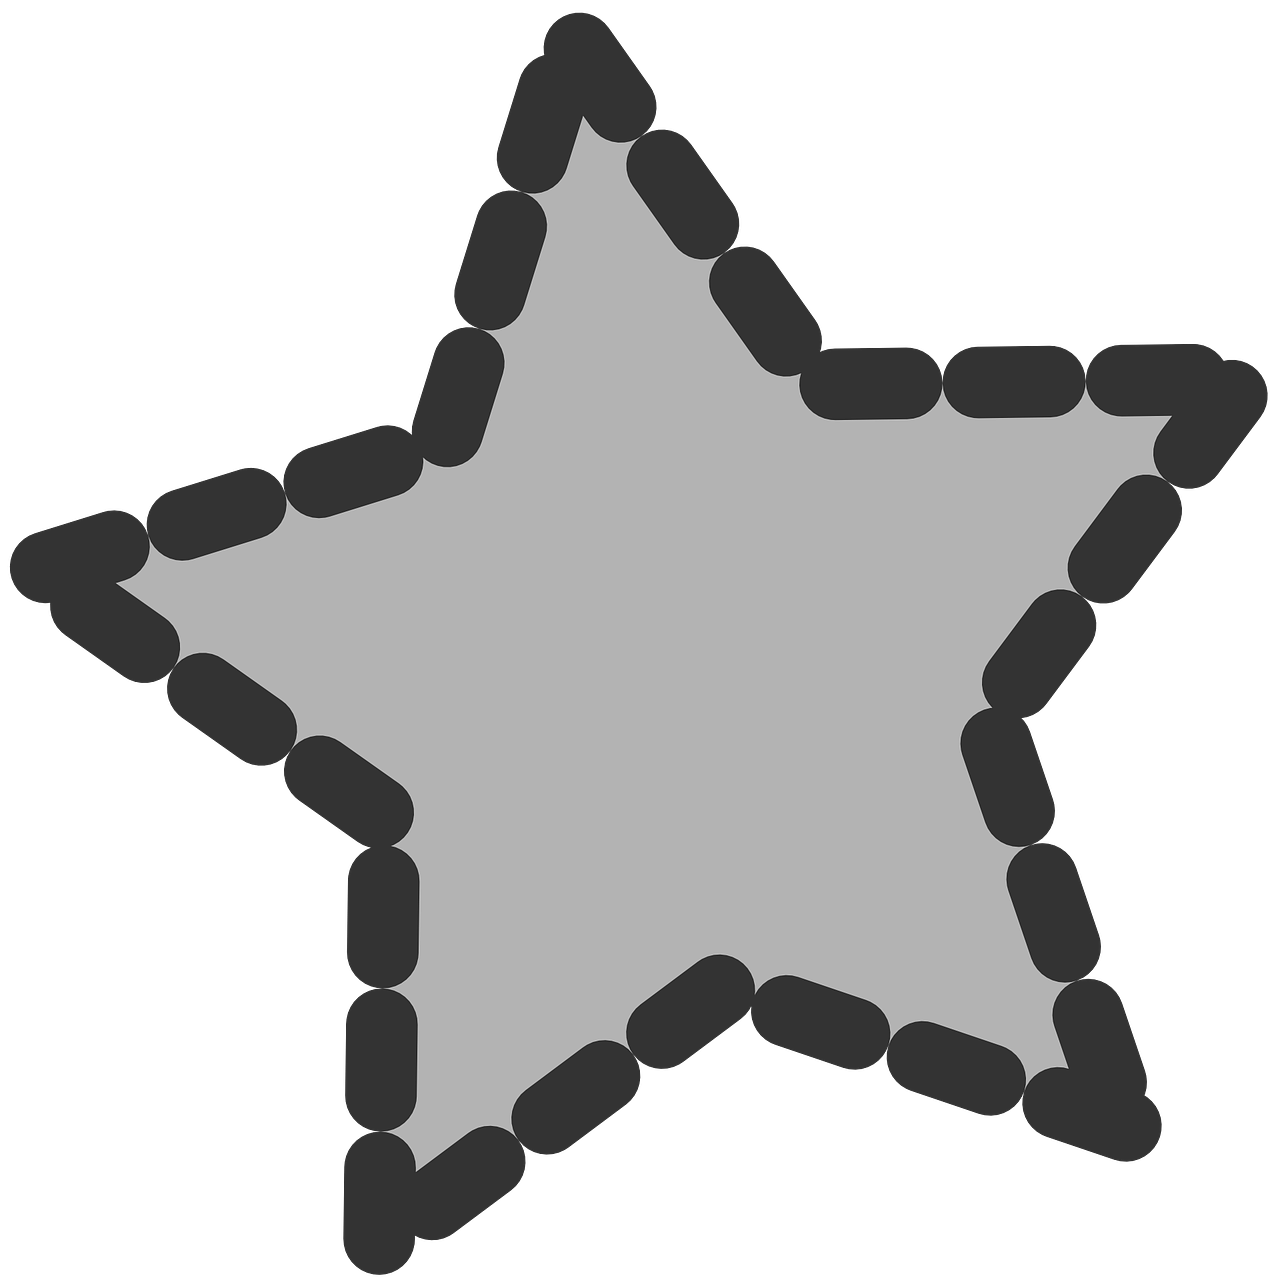 star shape dotted free photo